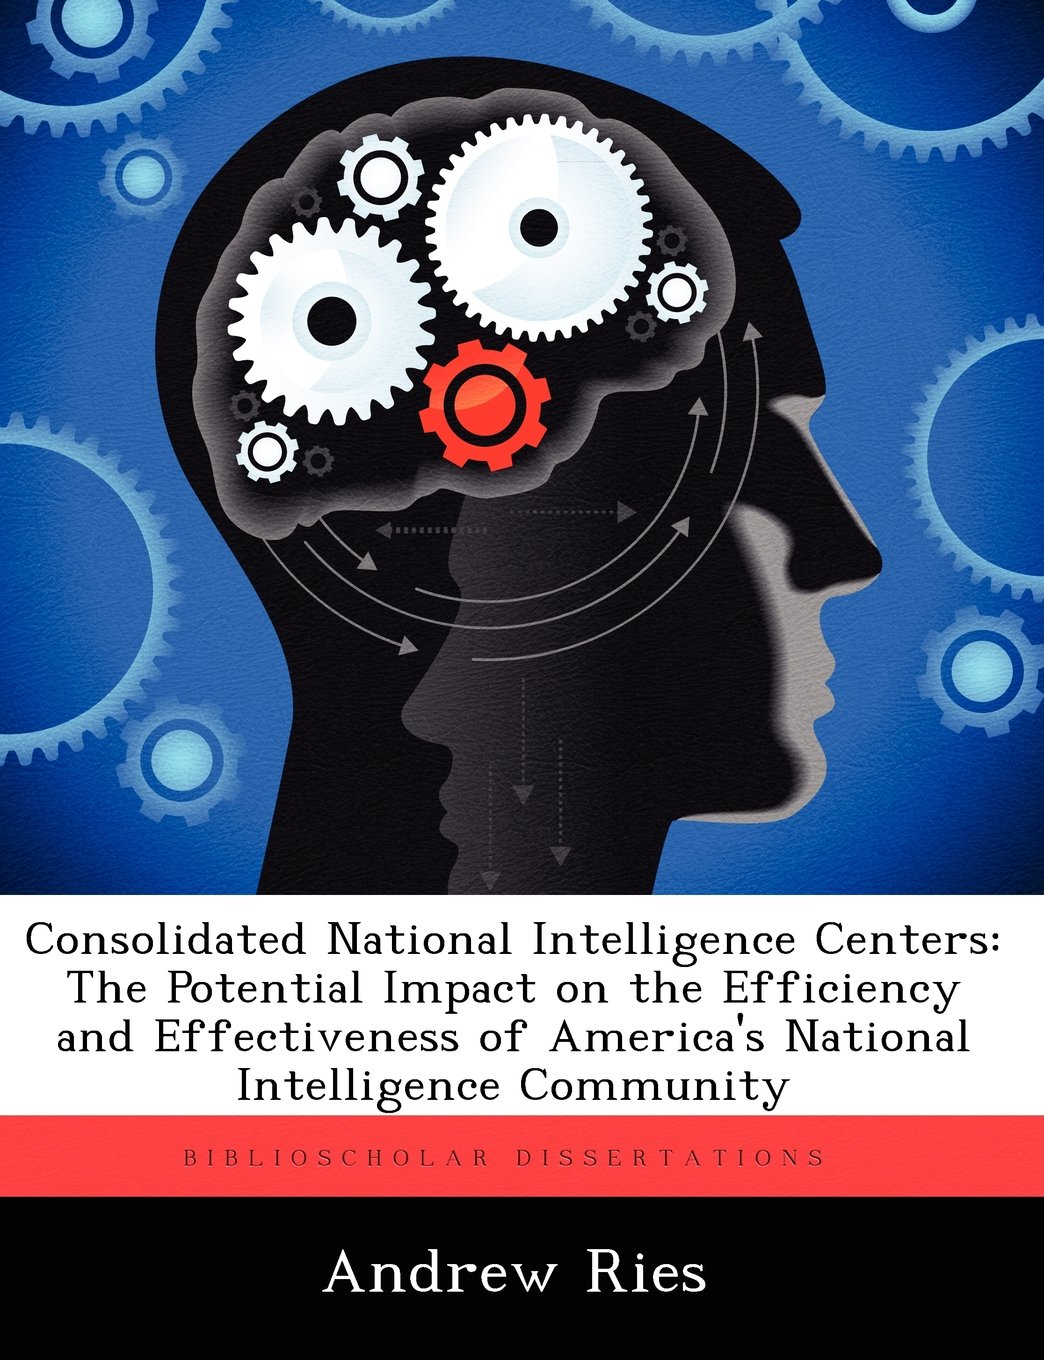 Download Consolidated National Intelligence Centers: The Potential Impact on the Efficiency and Effectiveness of America's National Intelligence Community PDF